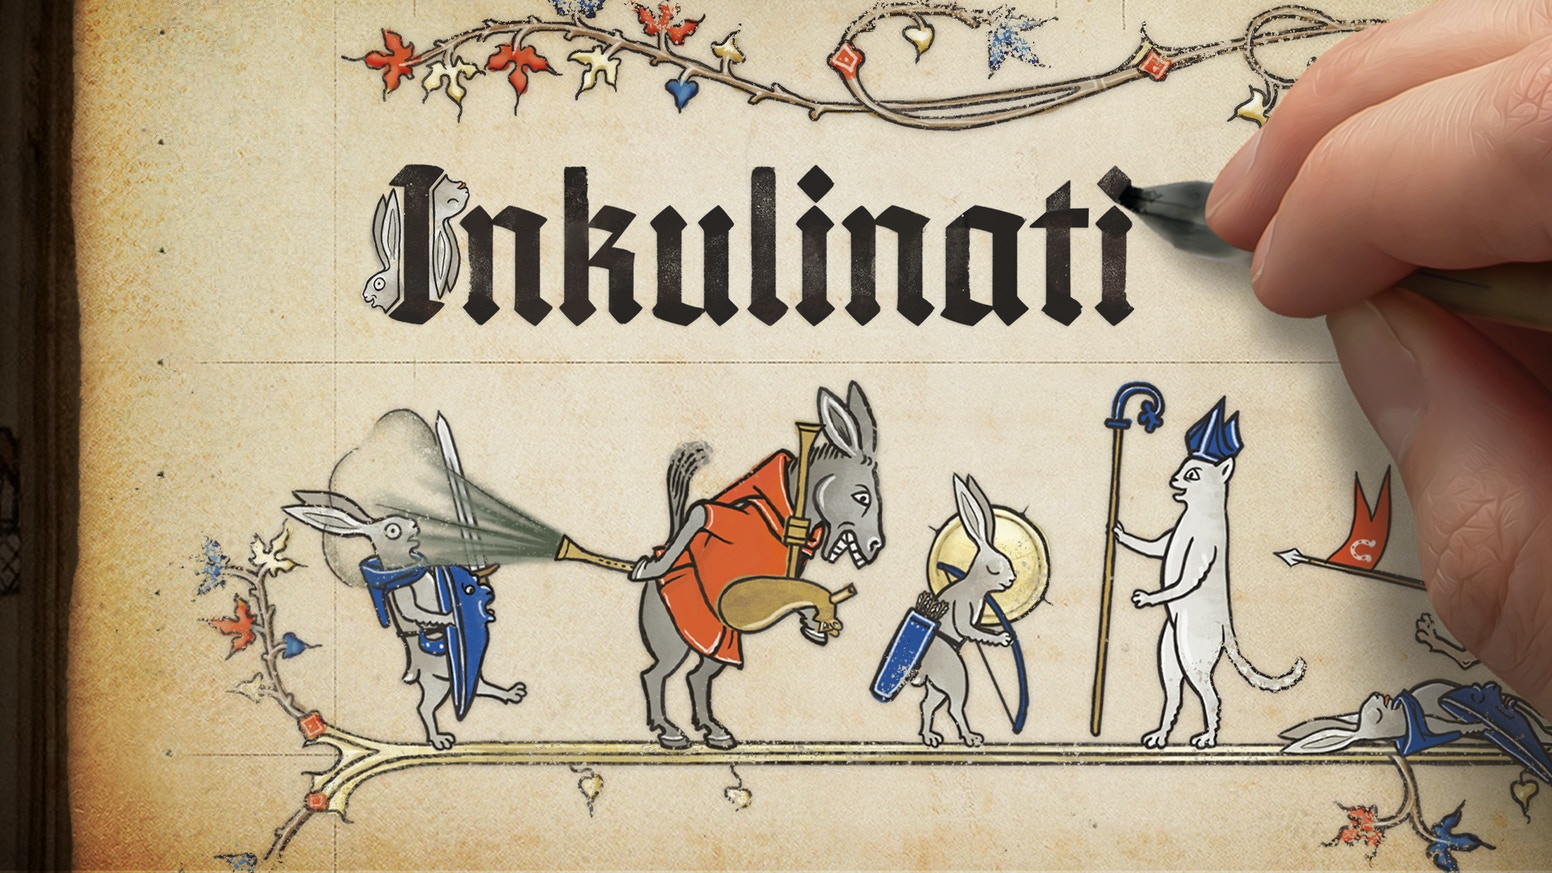 Become a master of the Living Ink and lead your illustrated animal army on the pages of medieval books.